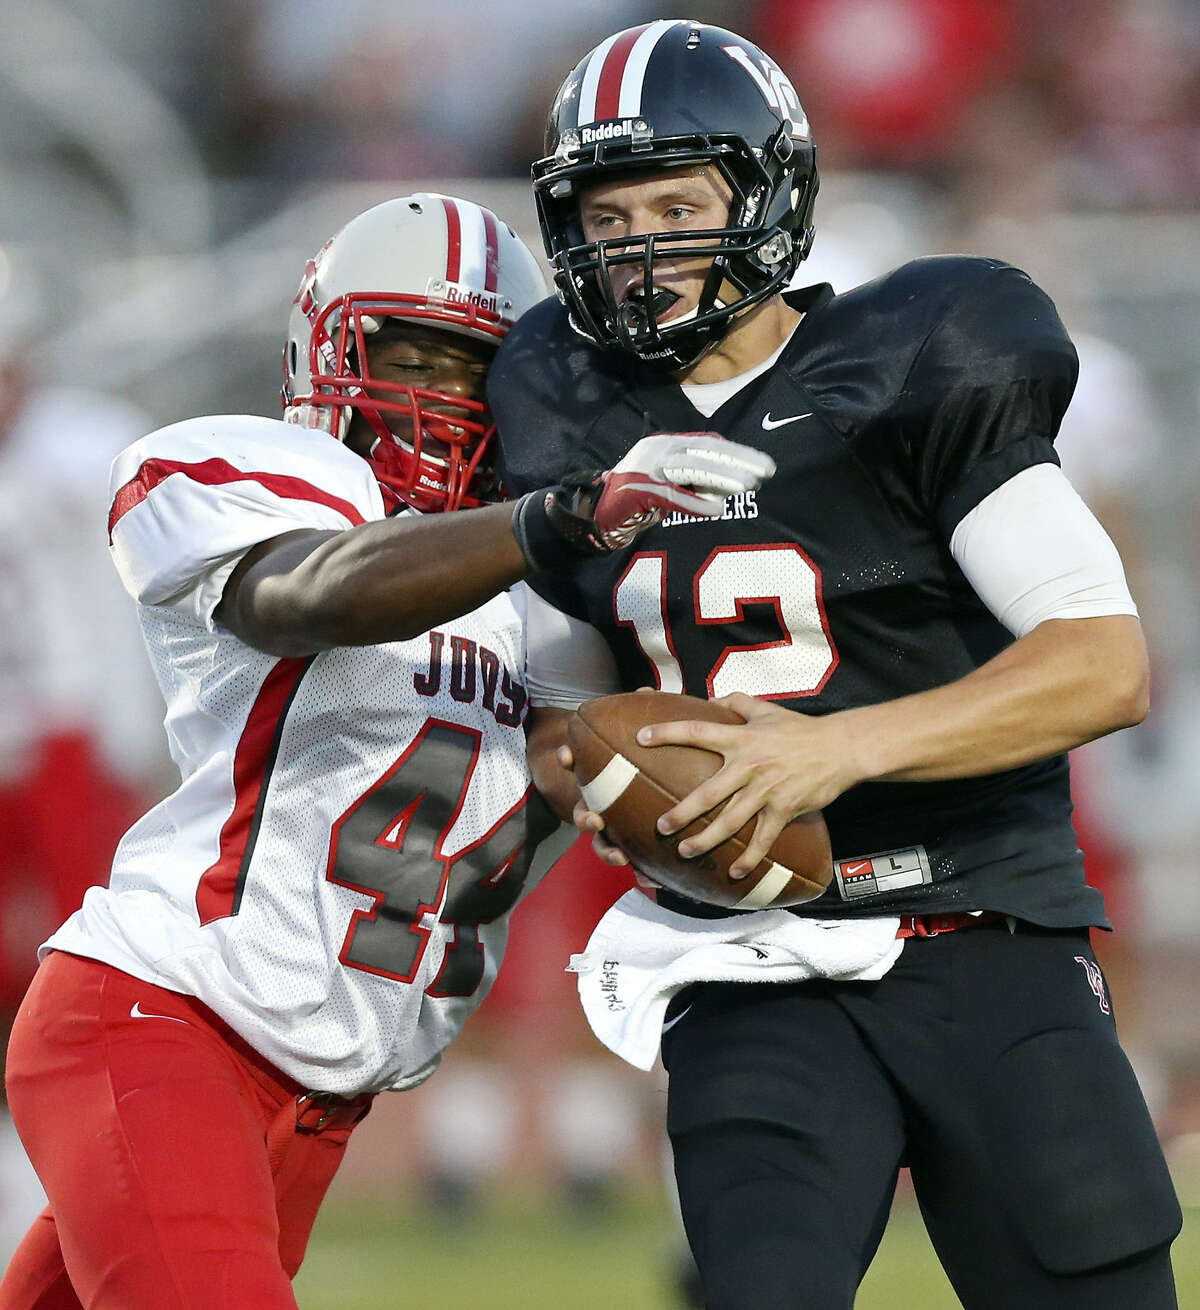 Judson's De'ontray Ellison sacks Churchill's Nate Pearson, who was held to 77 yards passing.